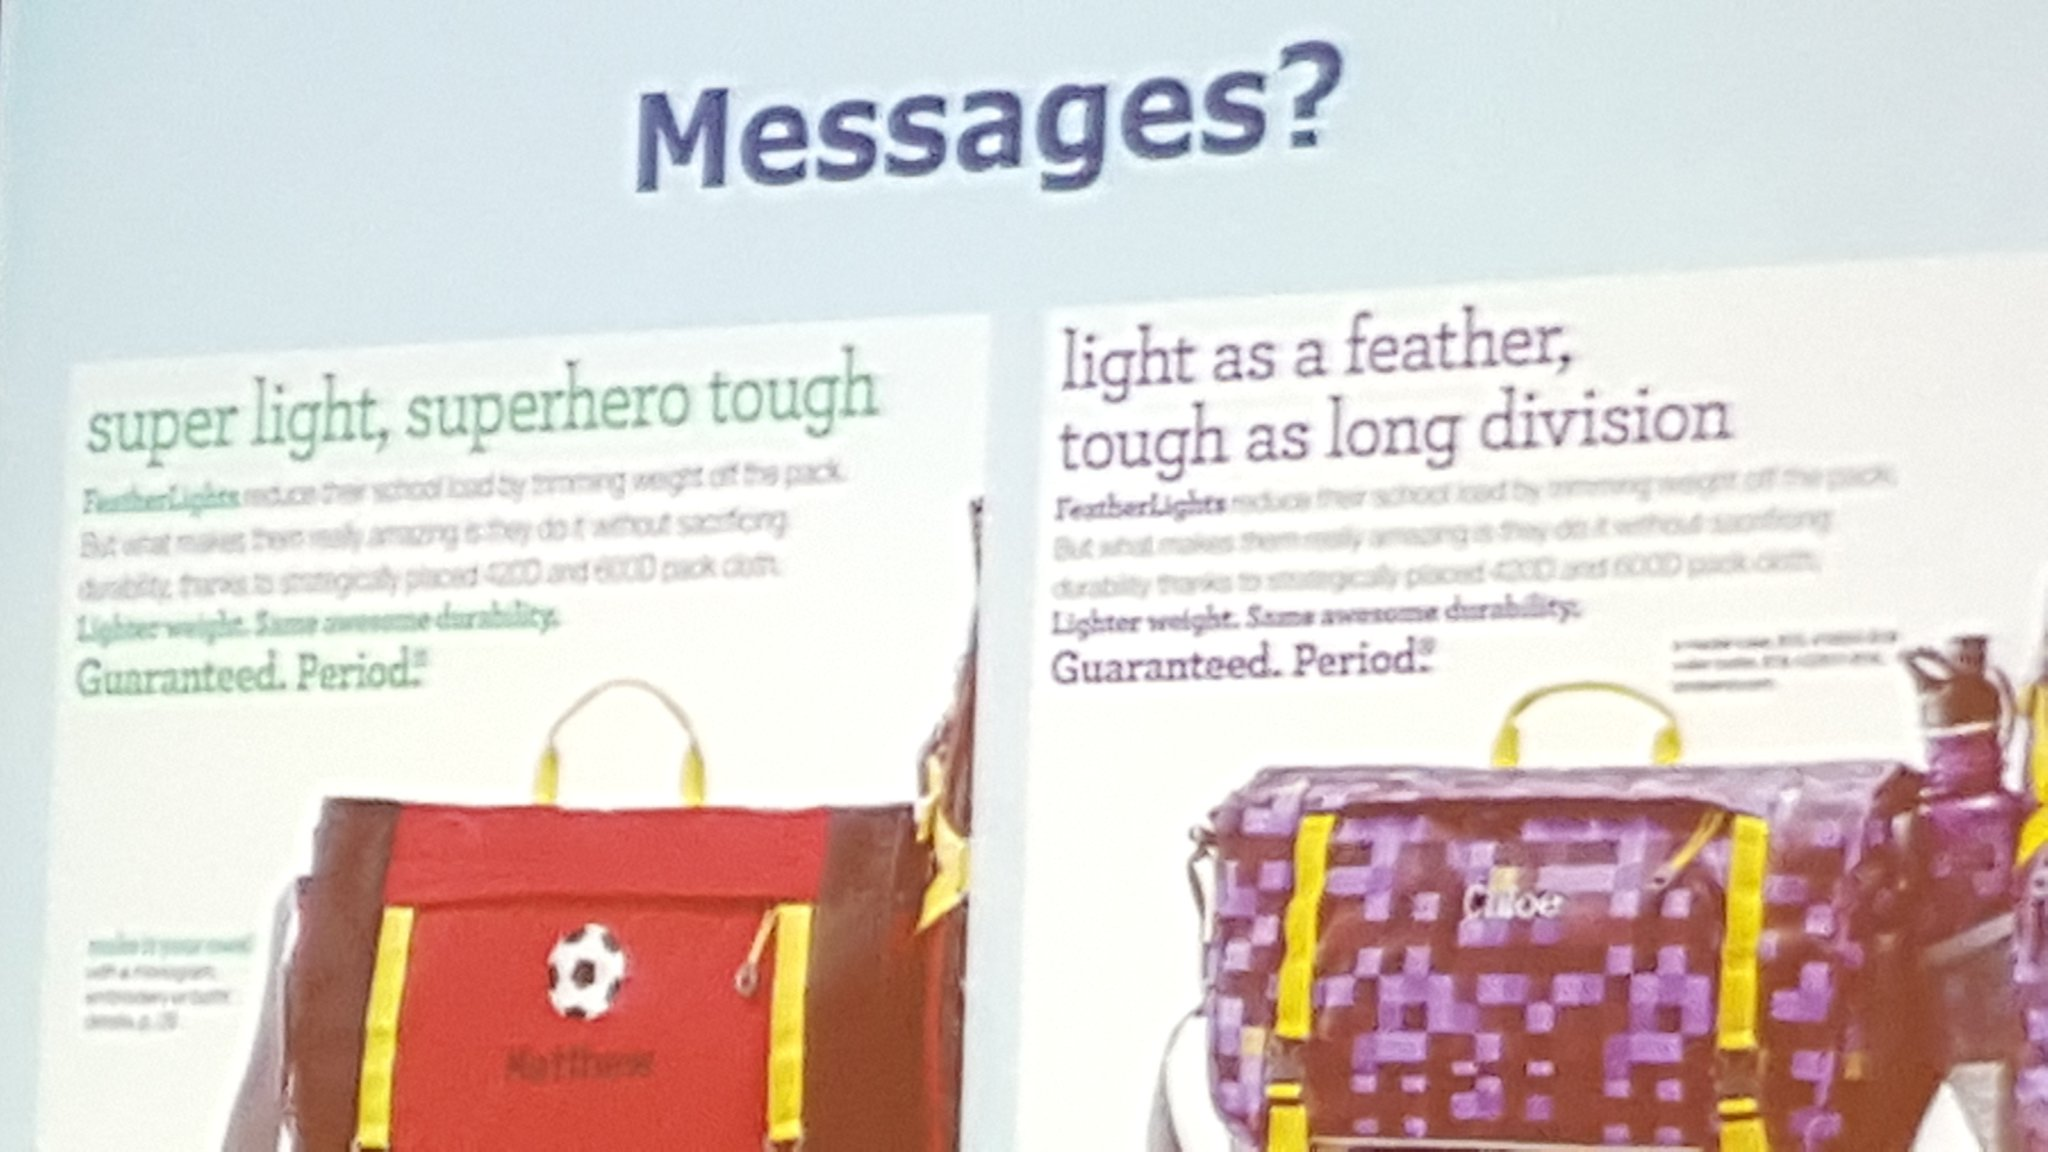 Micro messages and implicit messages are crucial to attend to thru peer observ! @dbriars #NCTMregionals #presIgnite https://t.co/NtpyUGCMr9